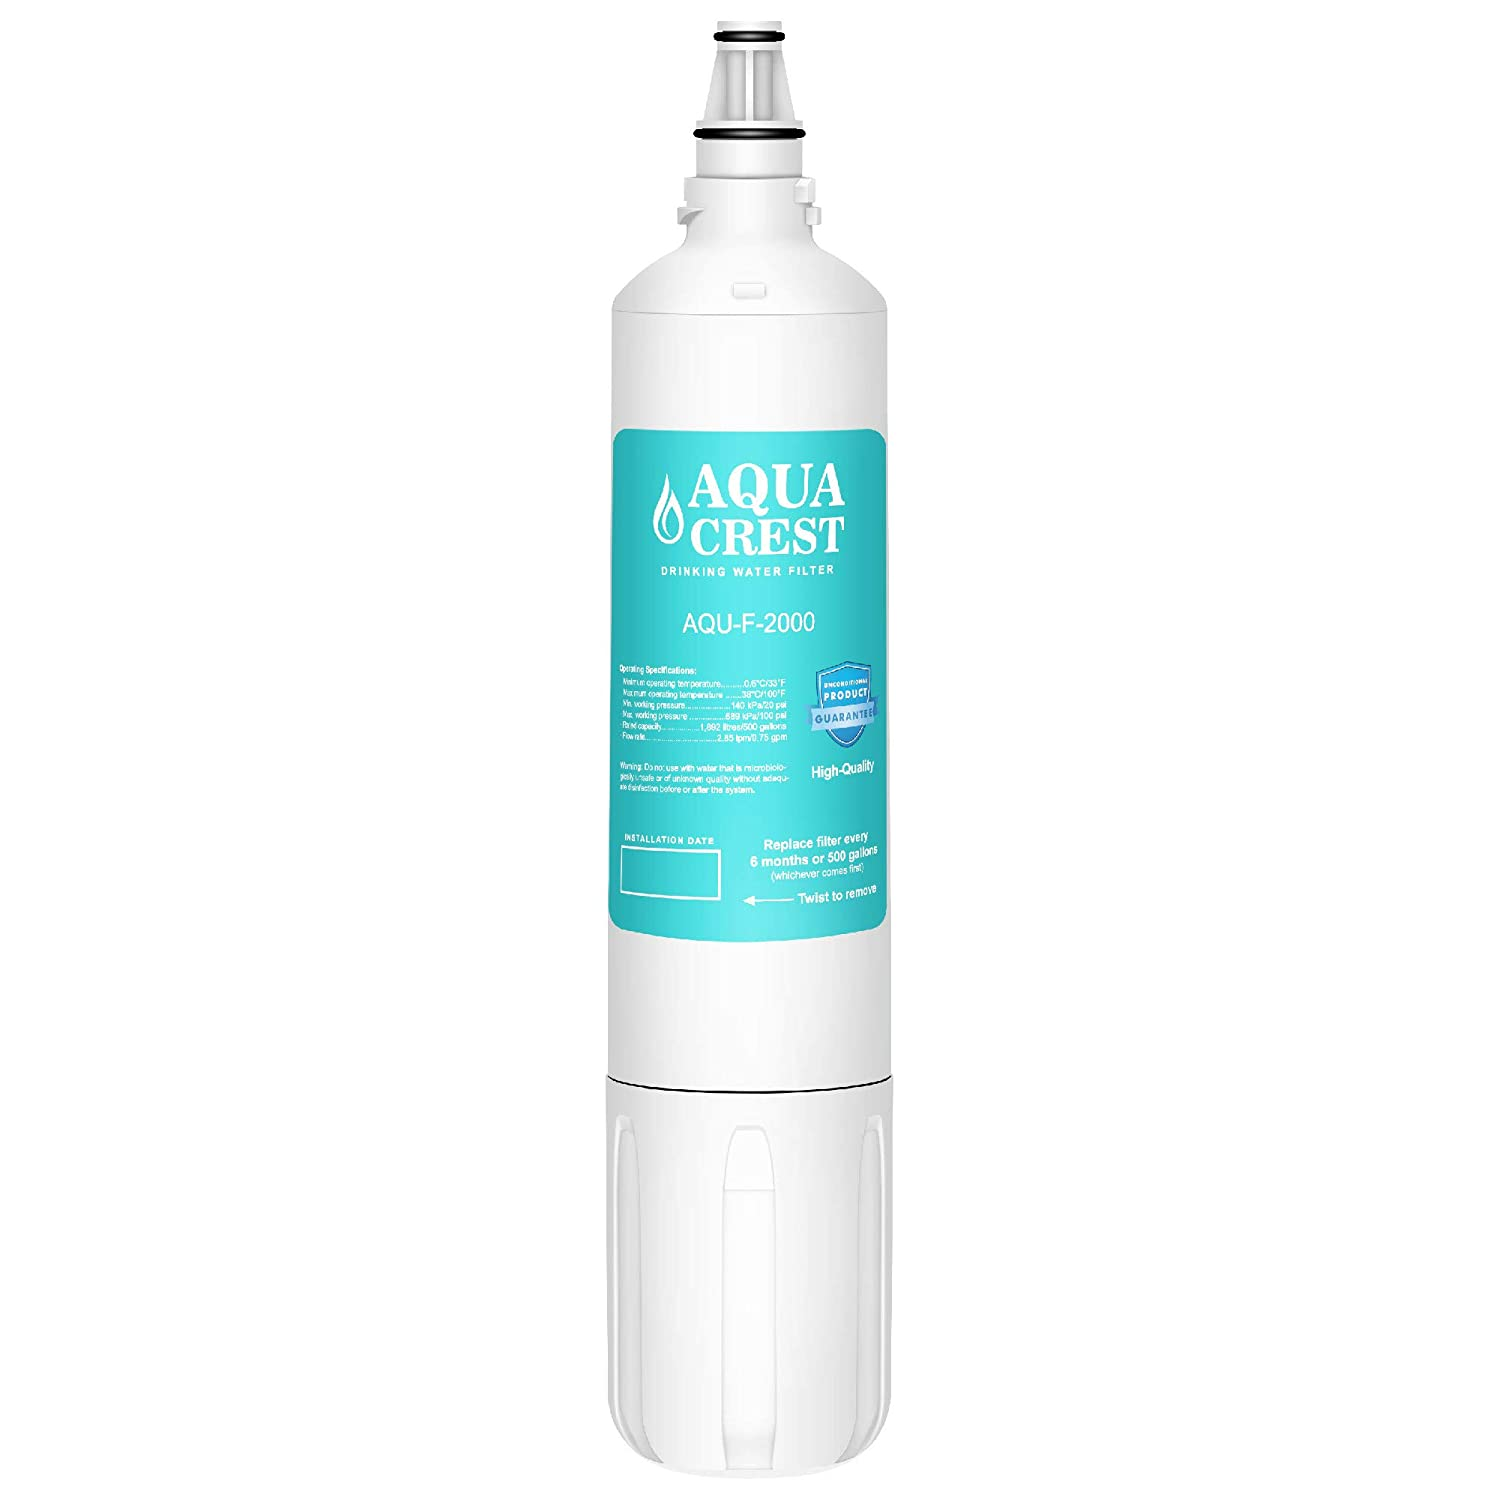 AQUA CREST F-2000 Under Sink Water Filter, Compatible with Insinkerator F-2000, F2000